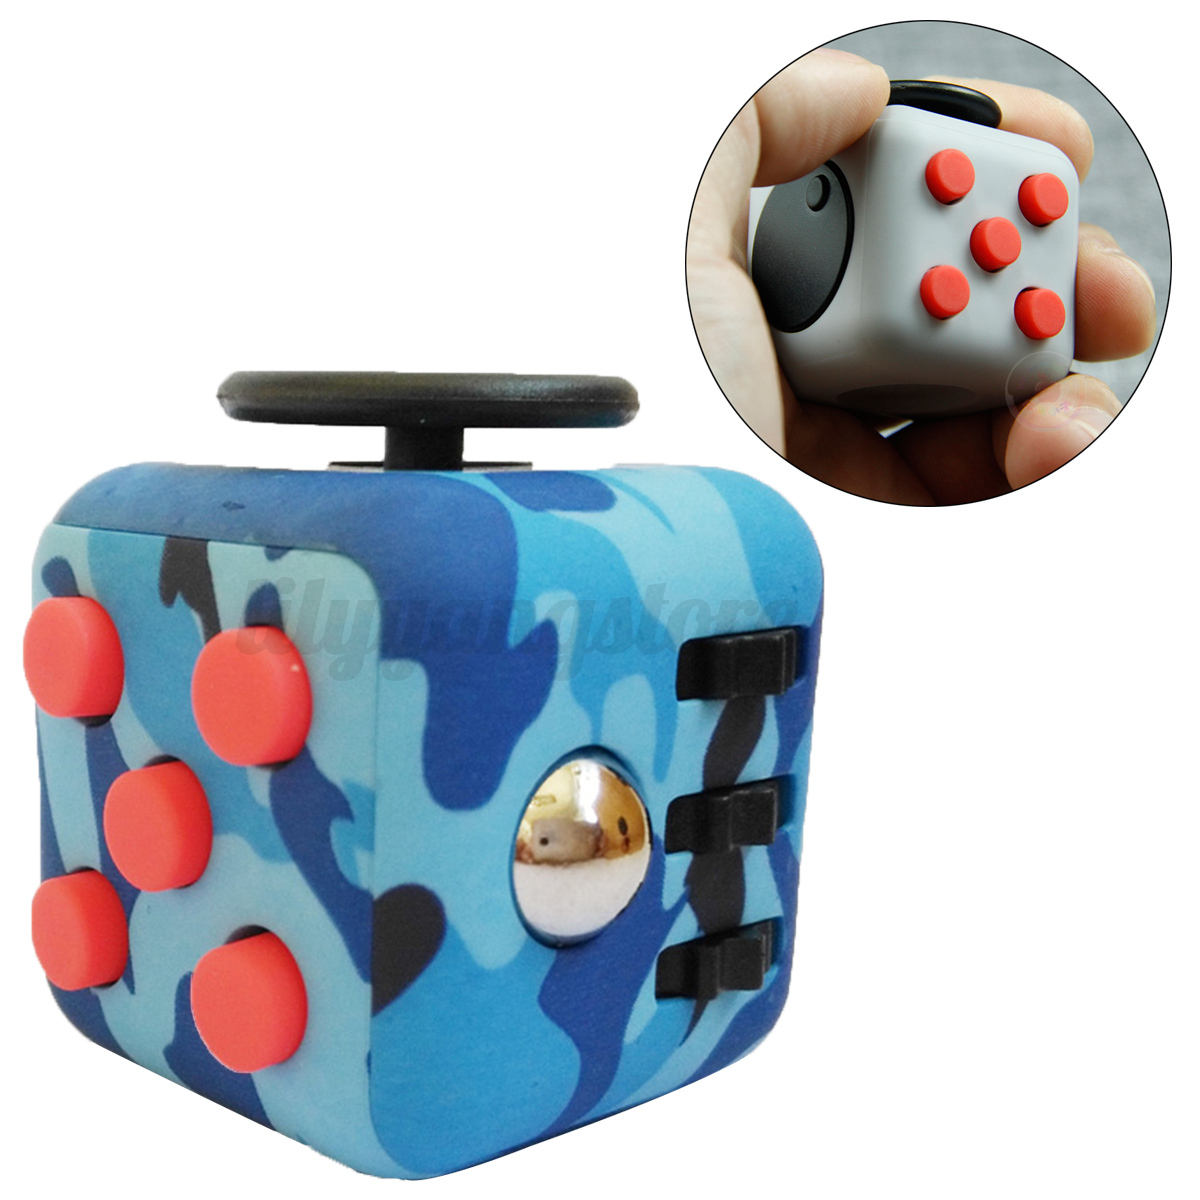 NEW Fidget Anxiety Stress Relief Cube Focus Adults Kids ...